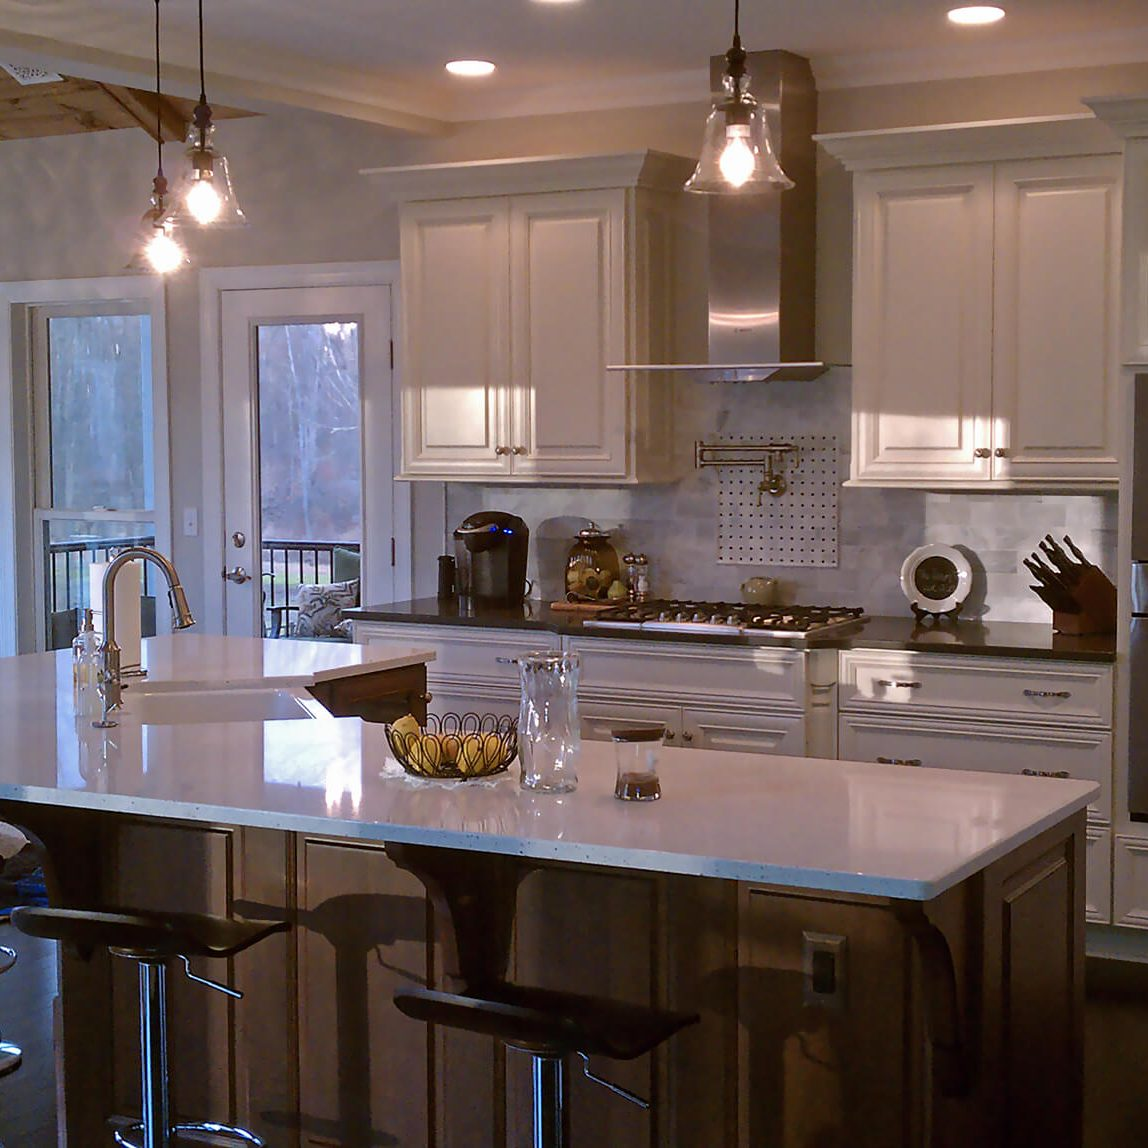 Our Work - Kinetic Kitchen and Bath Gallery Photo - Kitchen remodel design 16